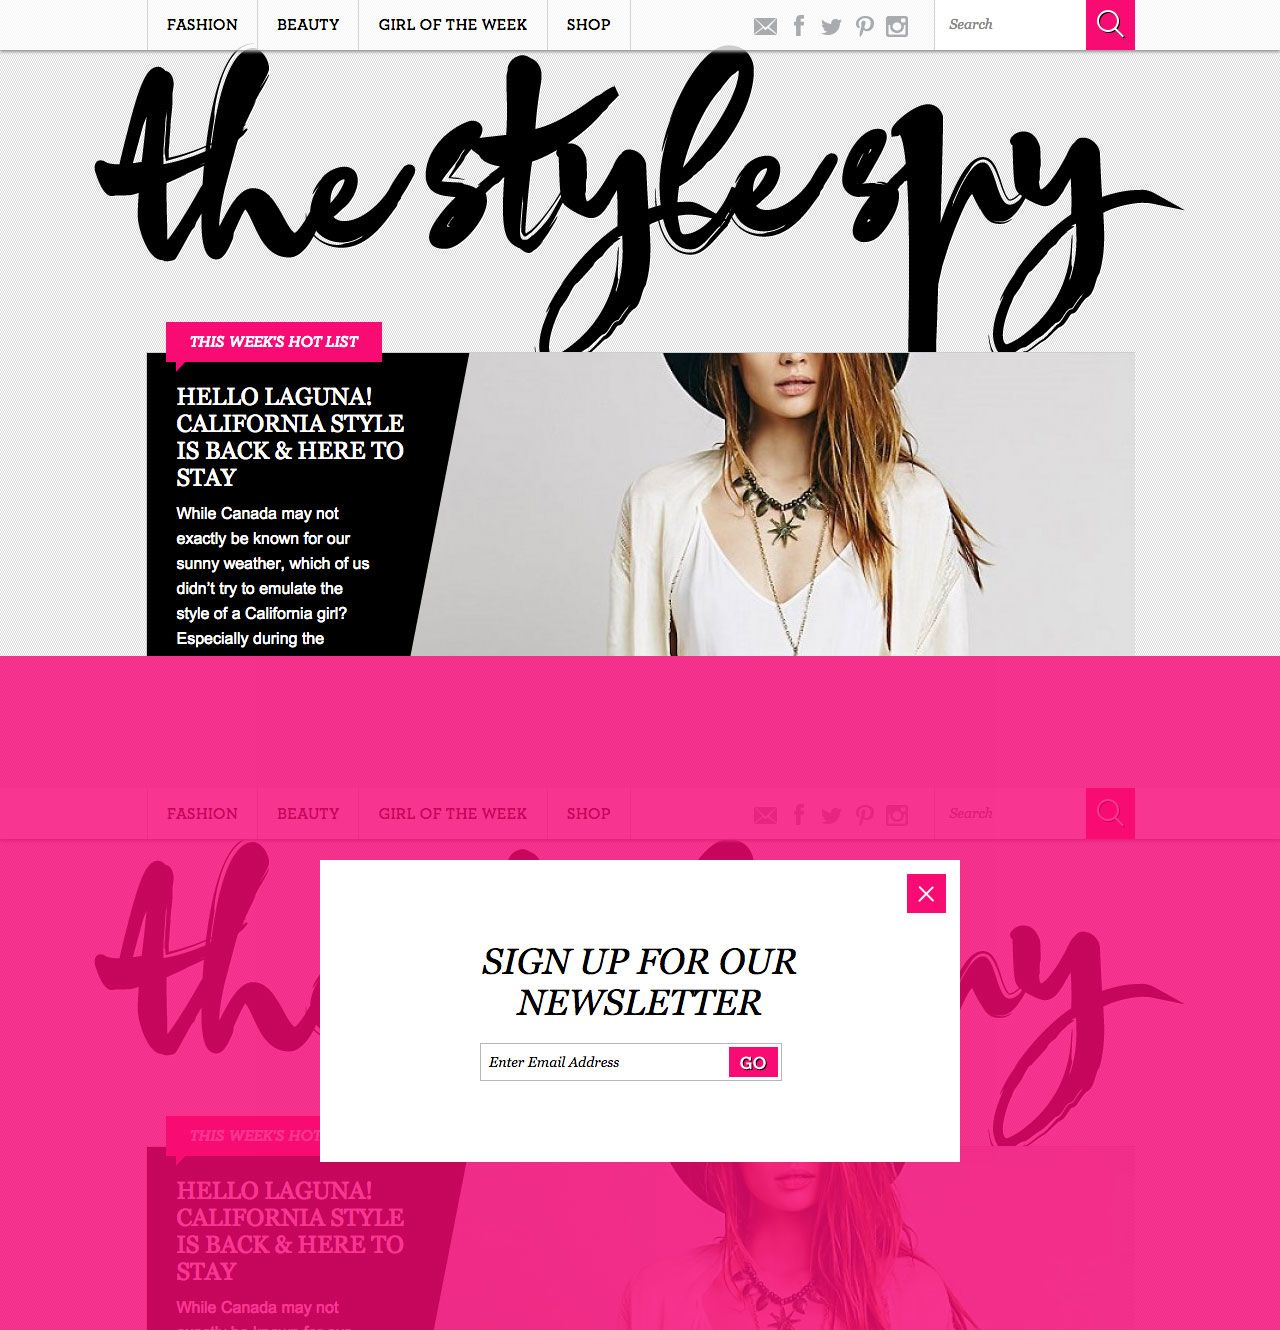 website colors neon : I Love The Neon Pink Background When A Popin Displays